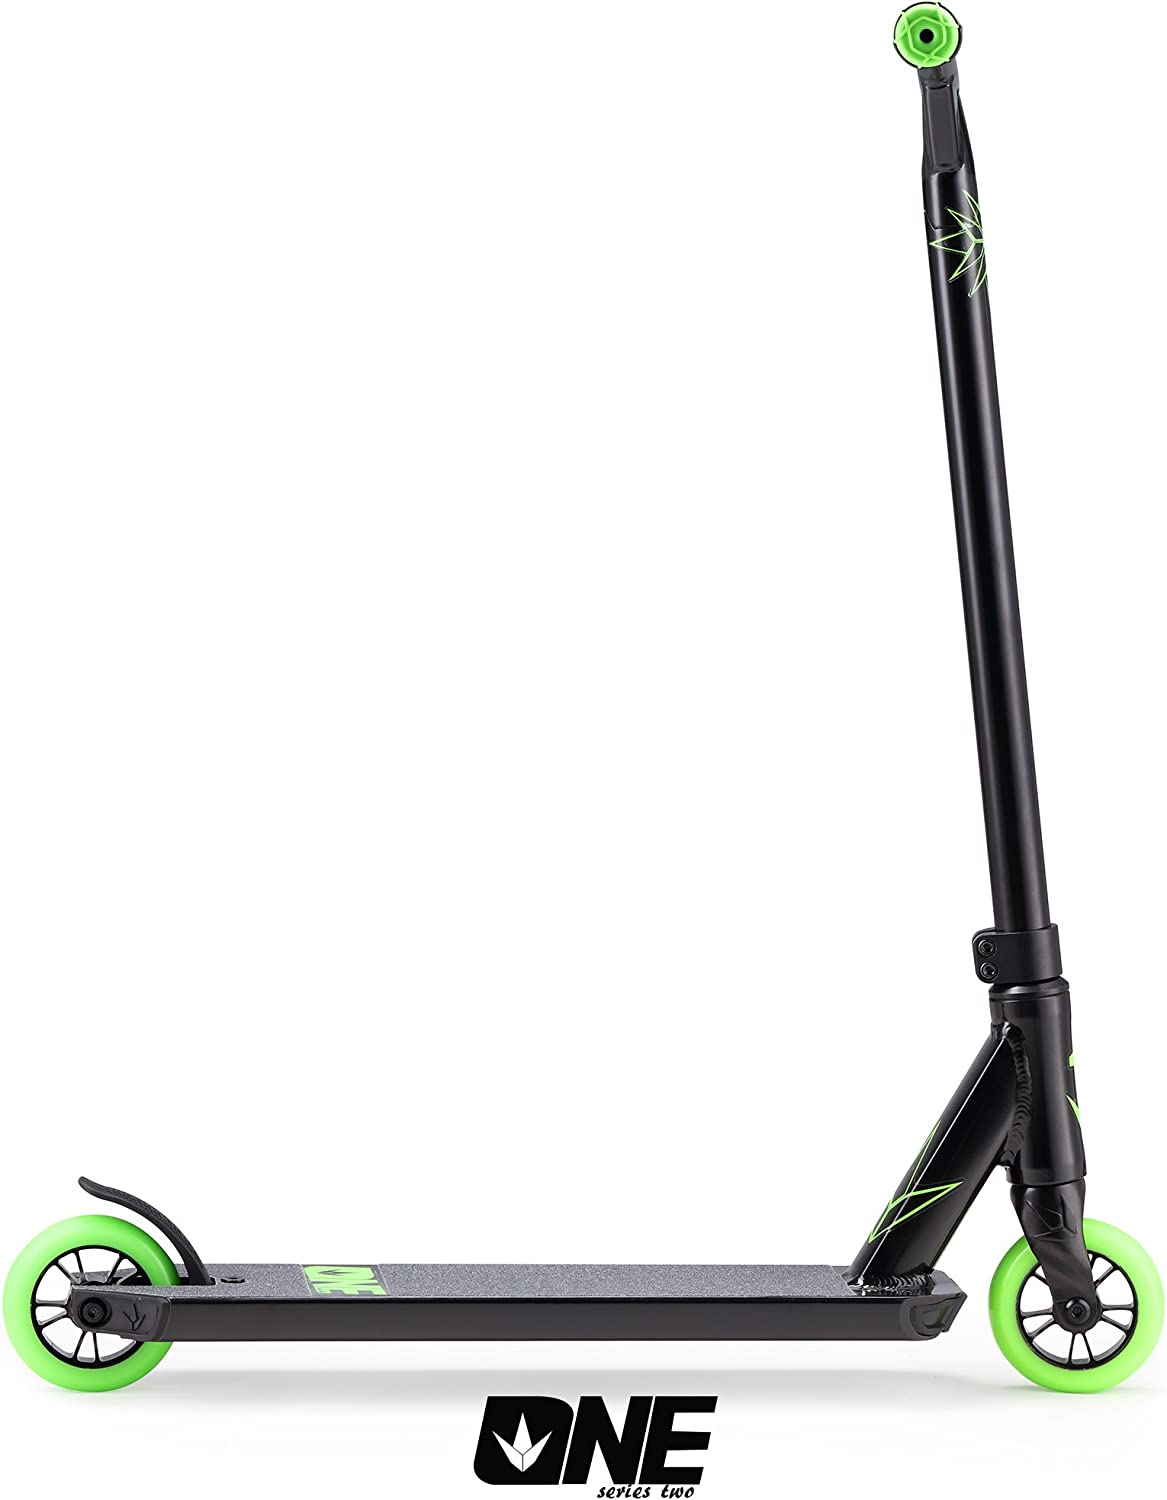 Amazon.com: Envy one Series 2 Scooter (Verde): Sports & Outdoors